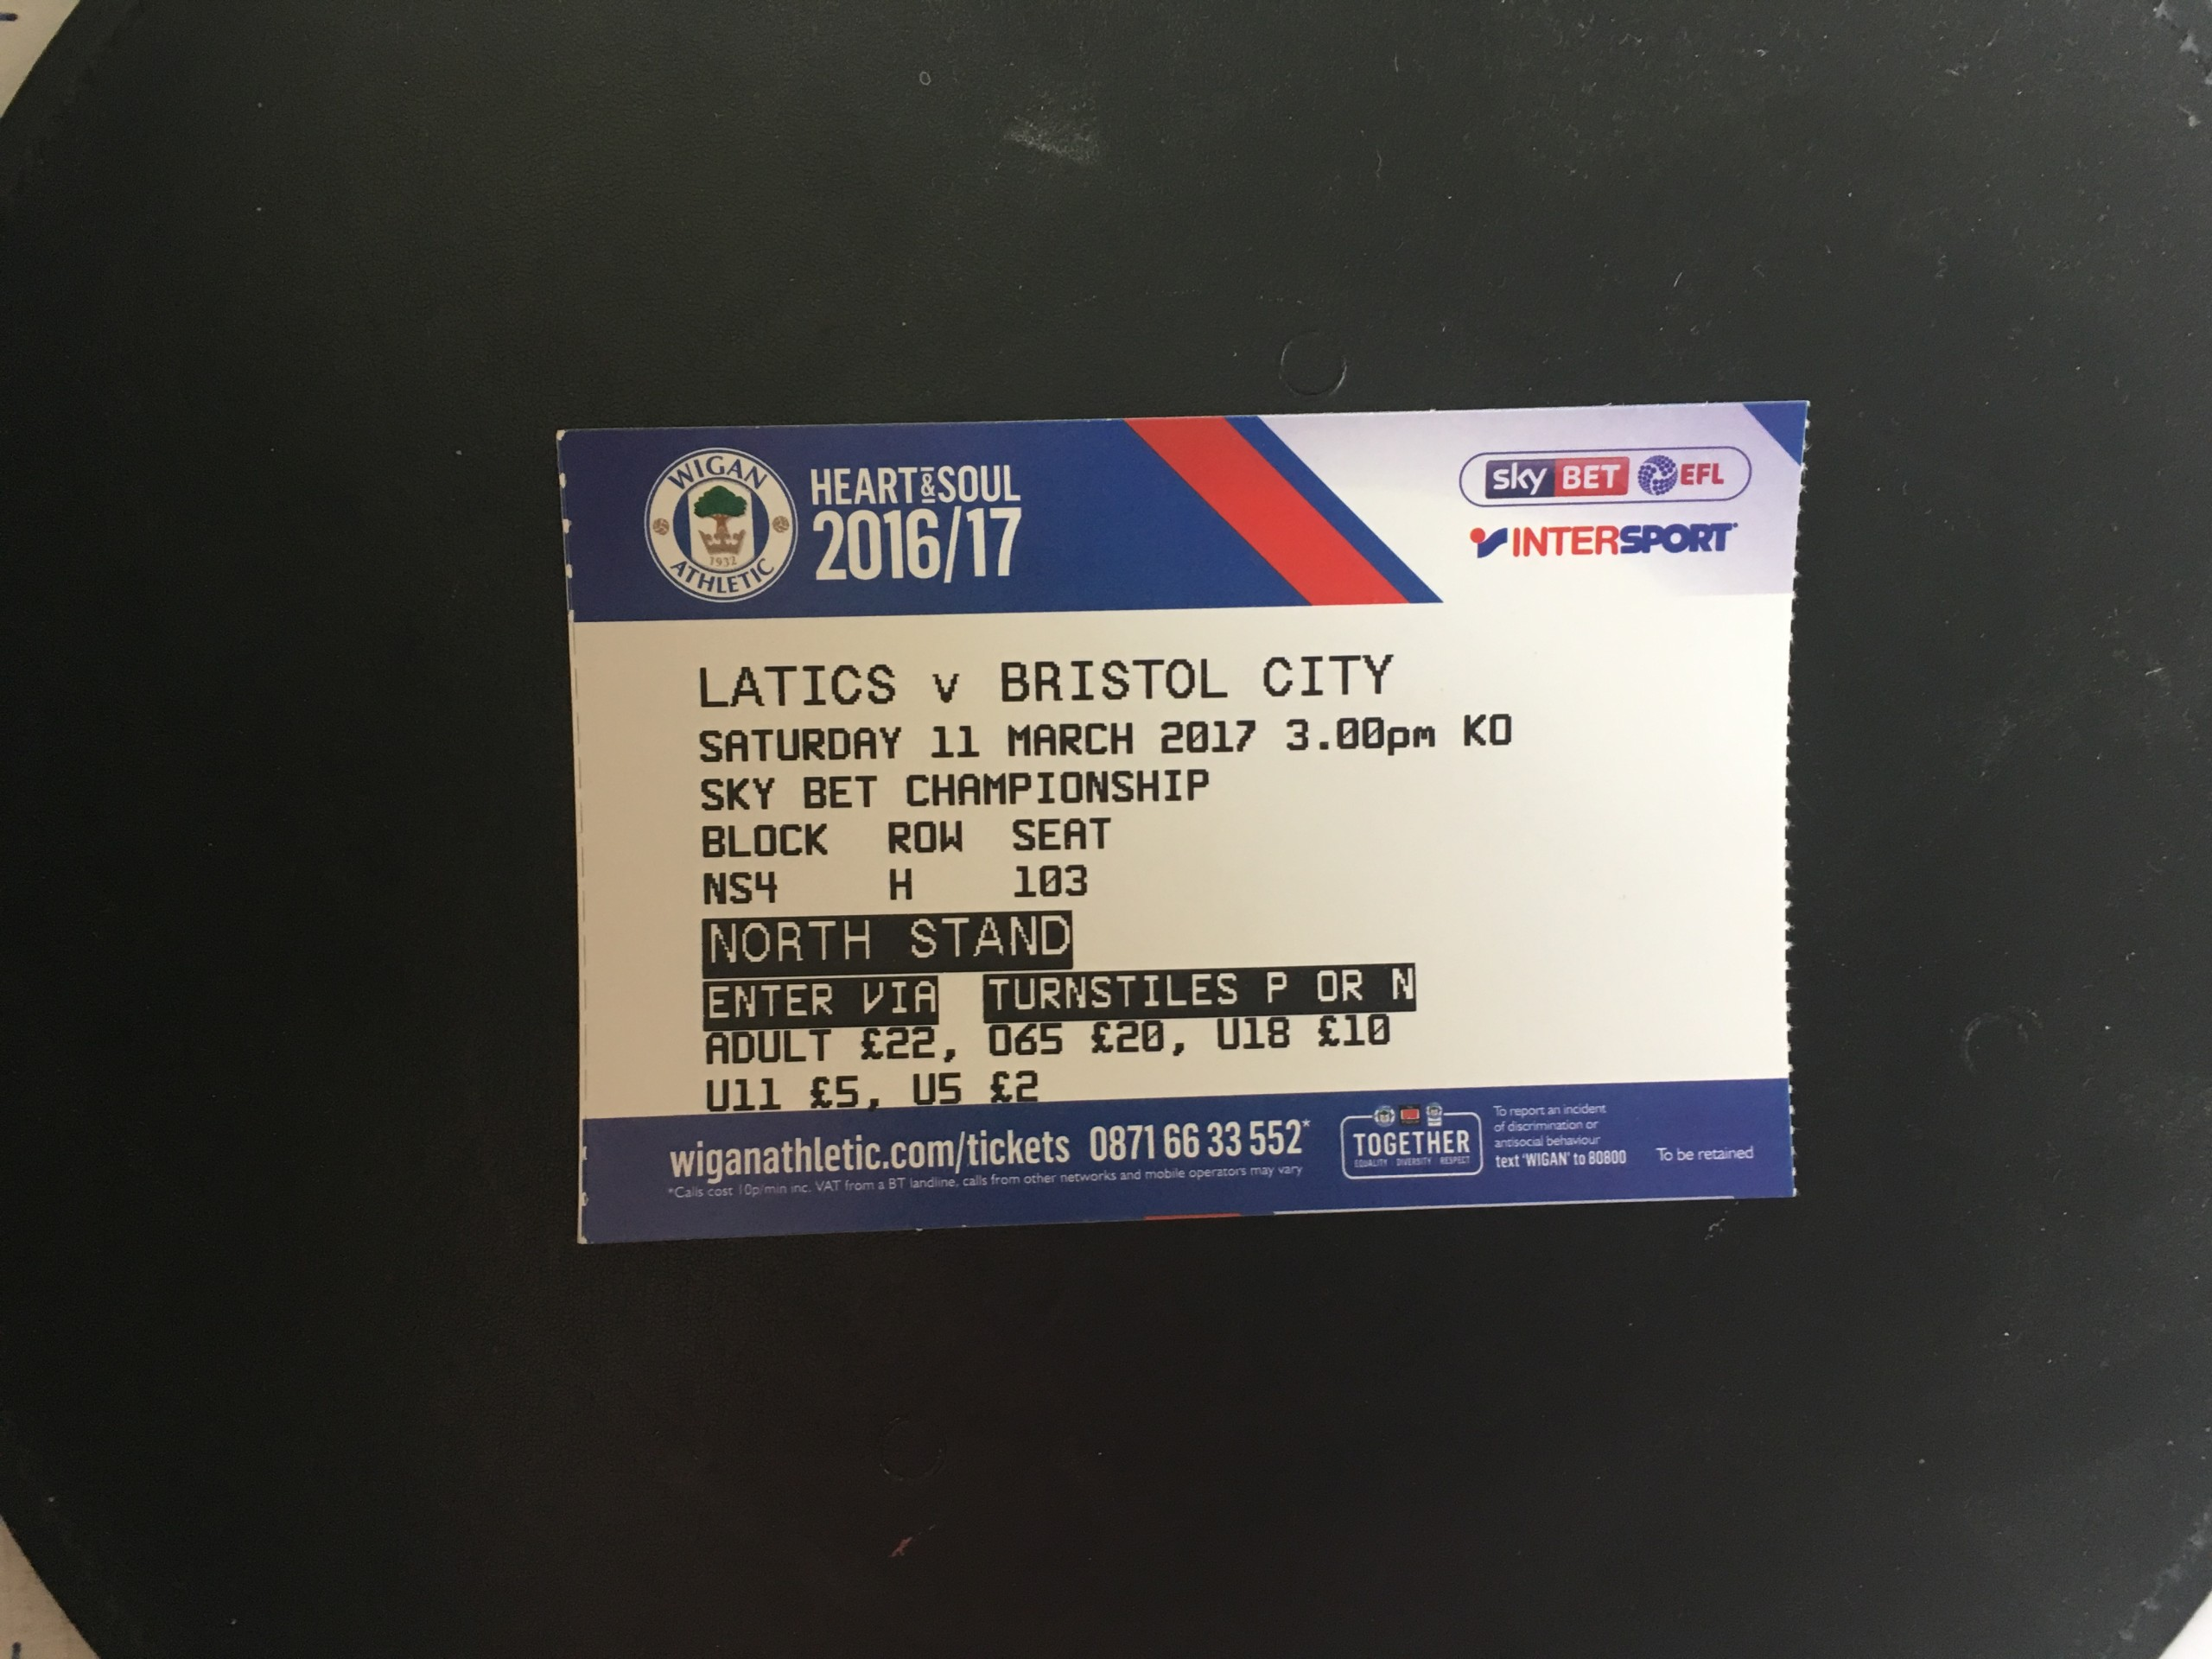 Wigan Athletic v Bristol City 11-03-17 Ticket